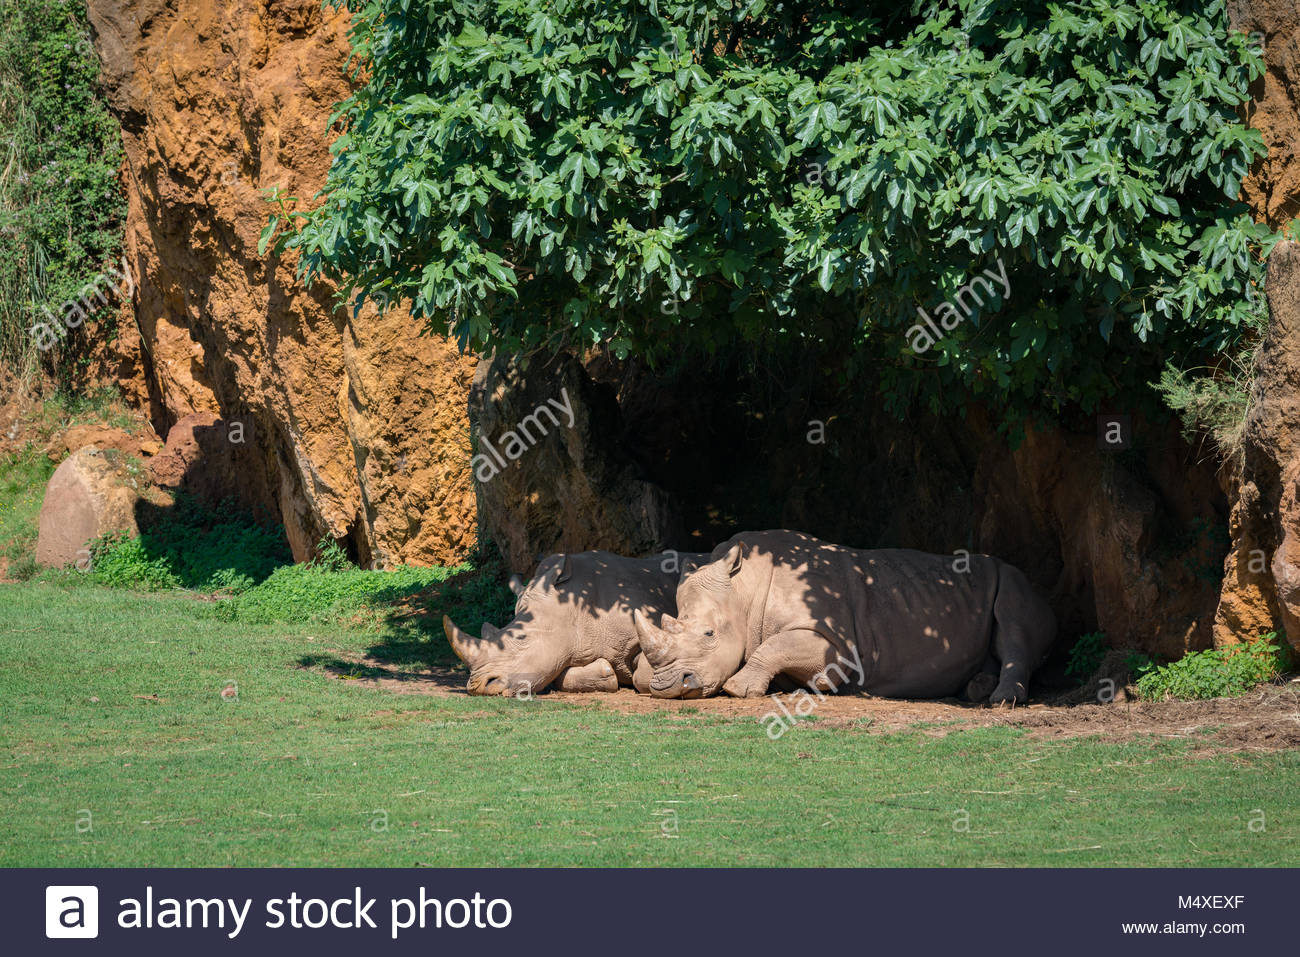 White rhinoceros lying under canopy of leaves - Stock Image